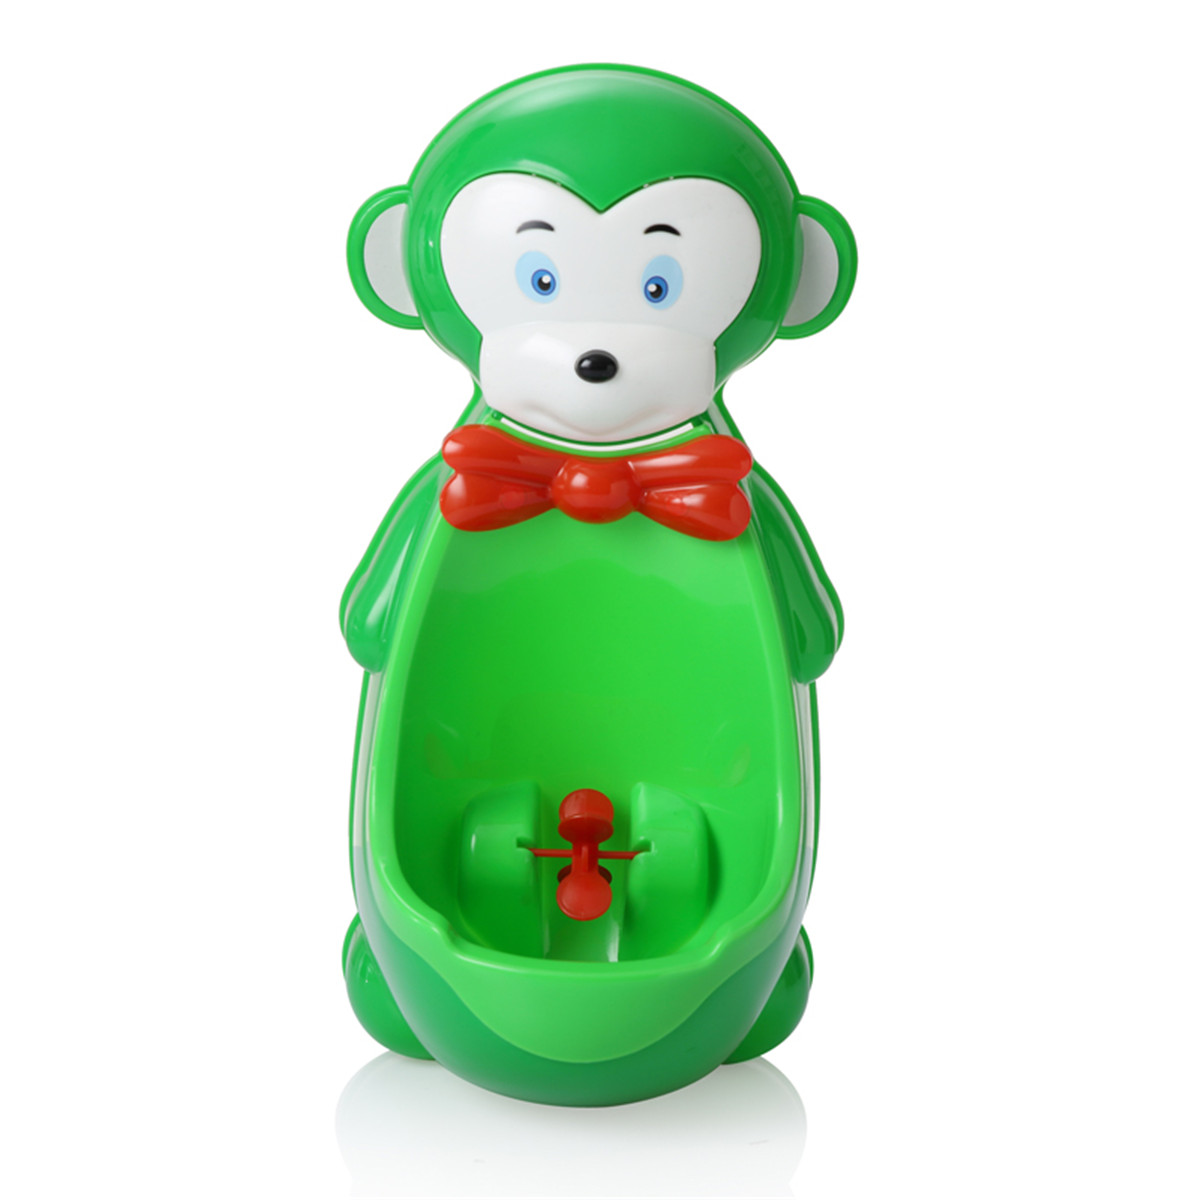 Lovely Monkey Boy Bathroom Hanging Pee Trainer Training Potty Toilet For Toddler Kids Children With Funny Aiming Target